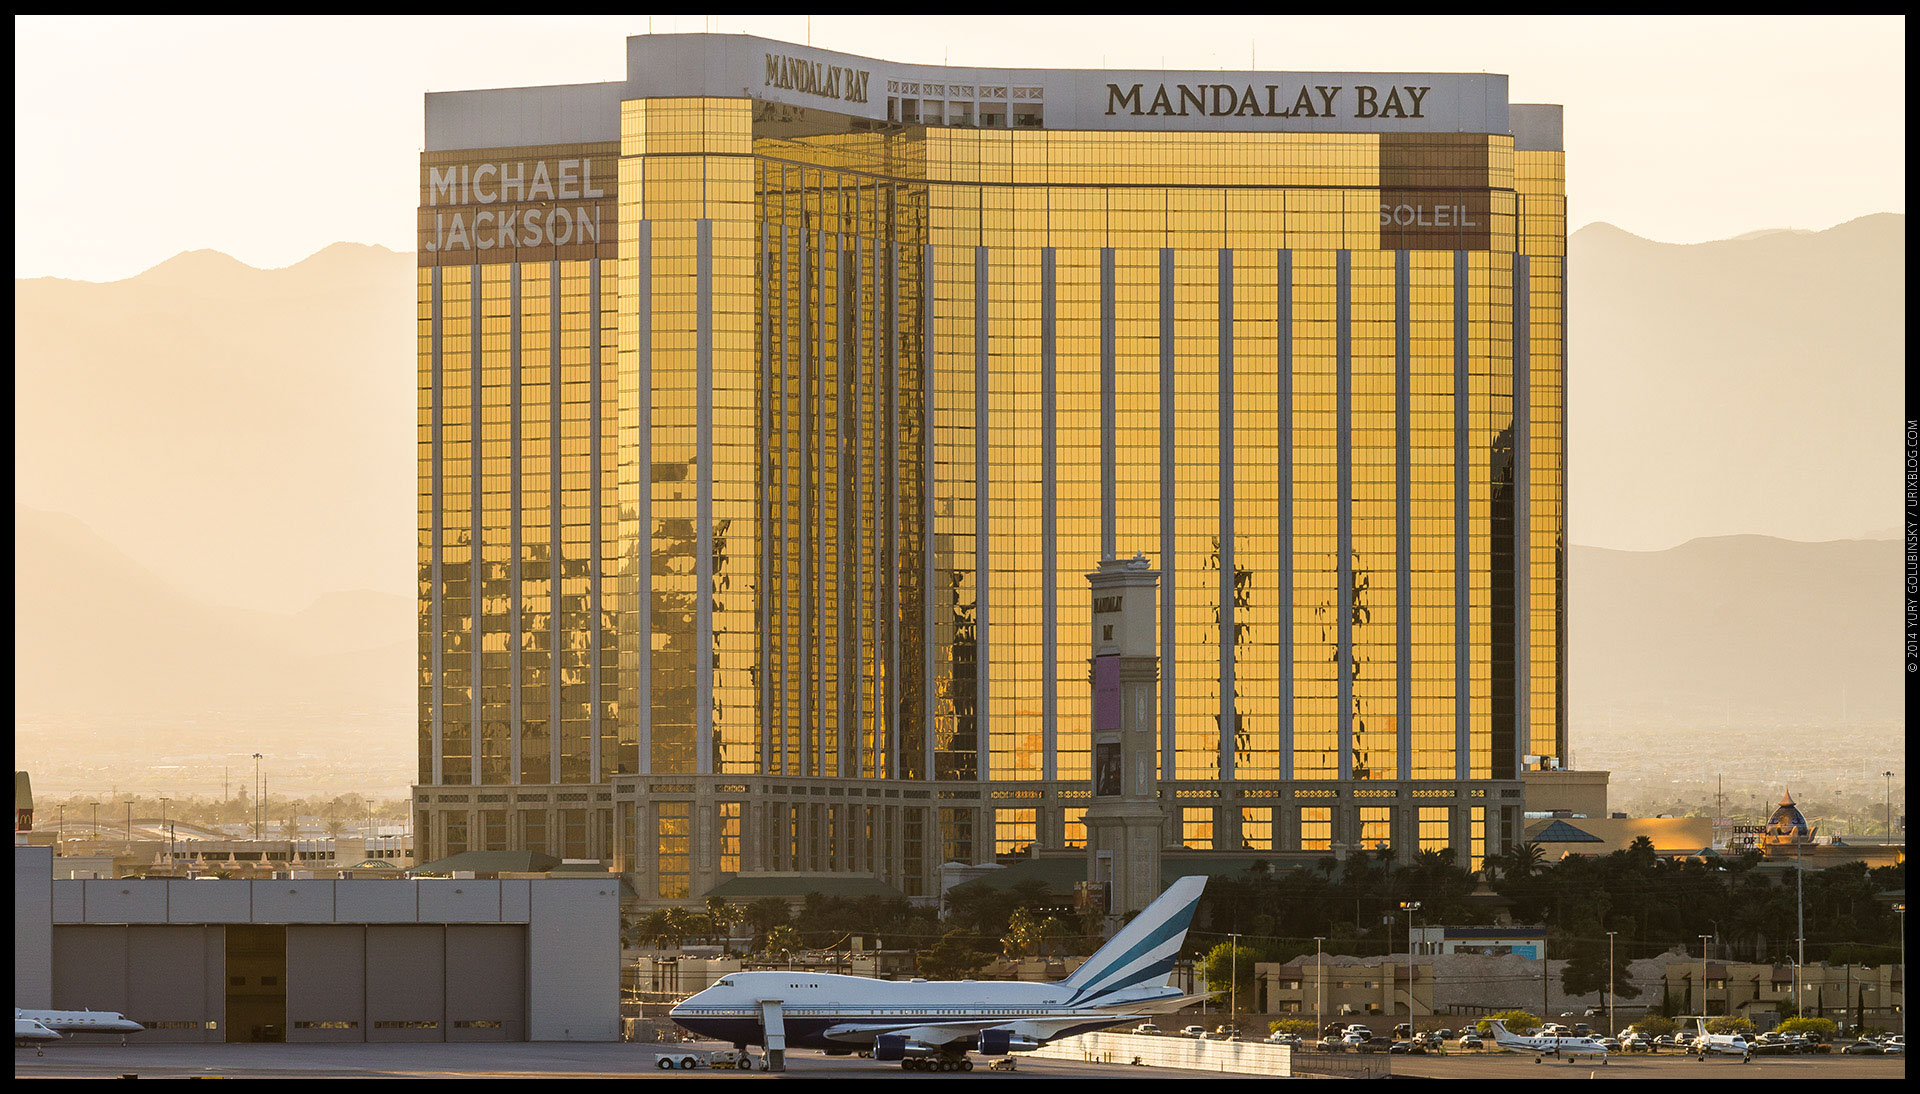 Mandalay Bay, casino, hotel, airplane, 2014, LAS, Las Vegas McCarran International airport, strip, LV, Clark County, USA, Nevada, panorama, horizon, city